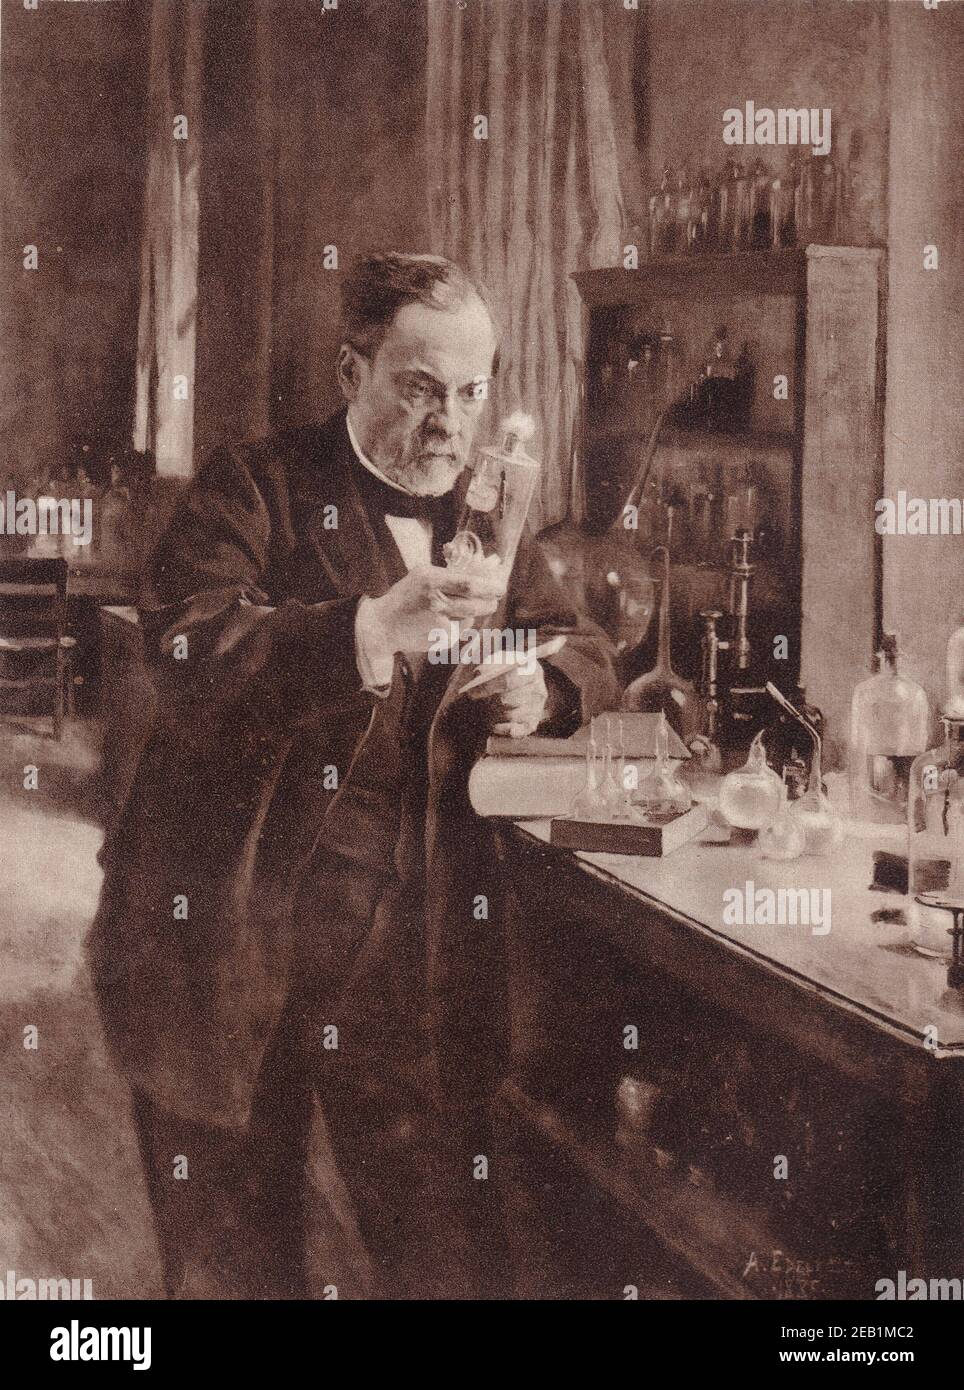 The Great French Chemist, Louis Pasteur, at work in his laboratory from the painting by Edelfelt. Stock Photo